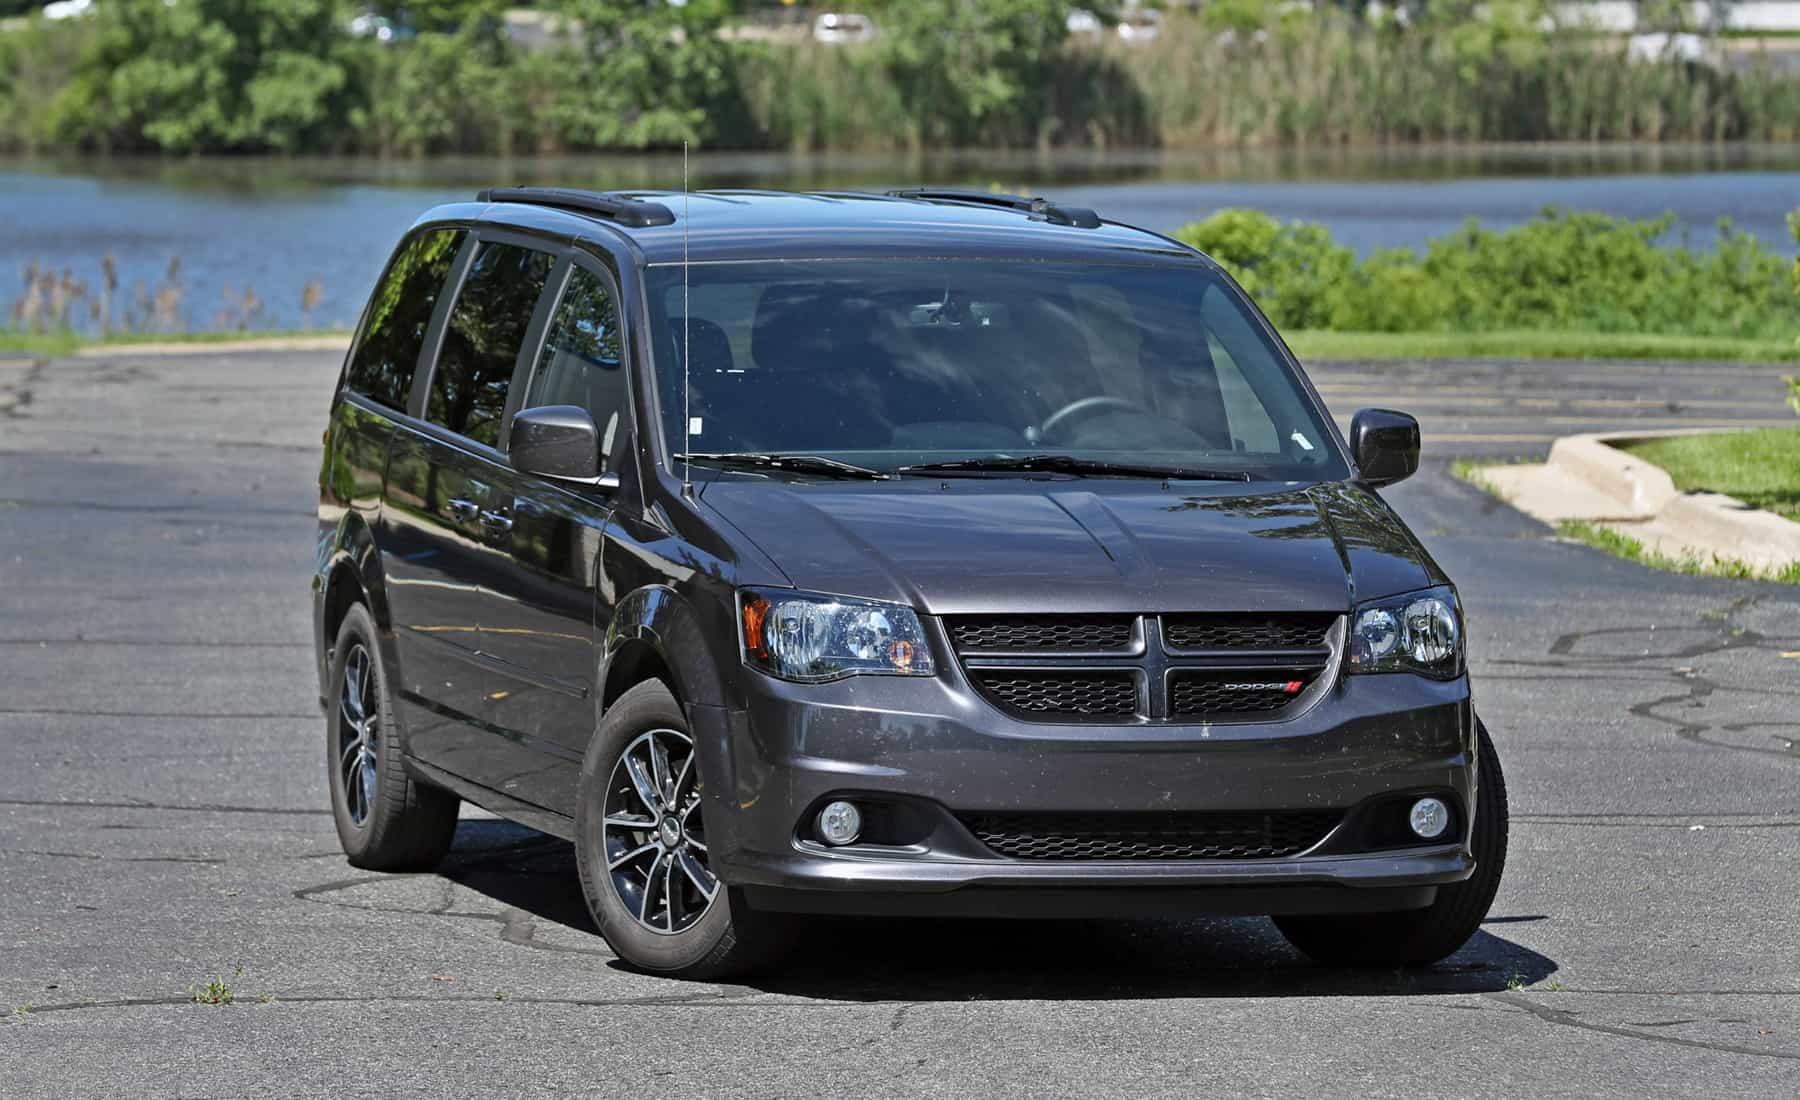 2017 Dodge Grand Caravan Exterior Front (View 47 of 47)